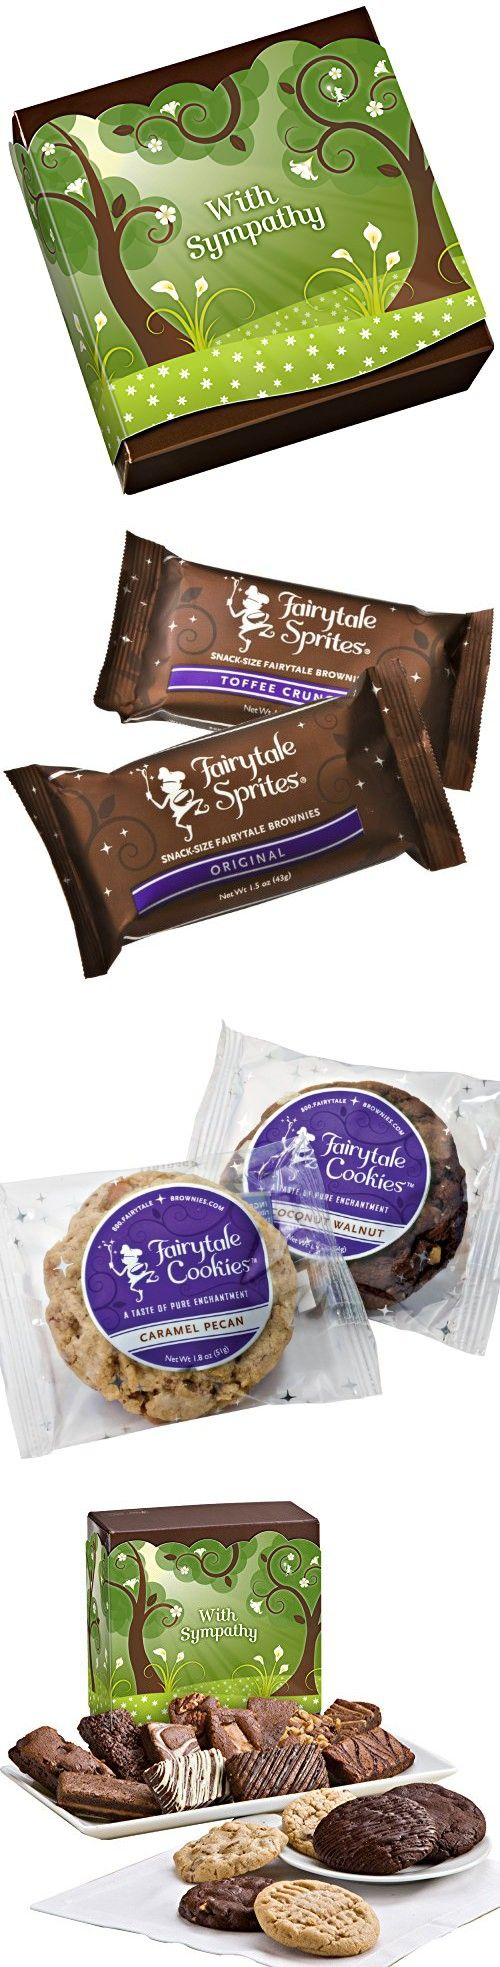 Fairytale Brownies Sympathy Cookie & Sprite Combo Gourmet Food Gift Basket Chocolate Box - 3 Inch x 1.5 Inch Snack-Size Brownies and 3.25 Inch Cookies - 18 Pieces